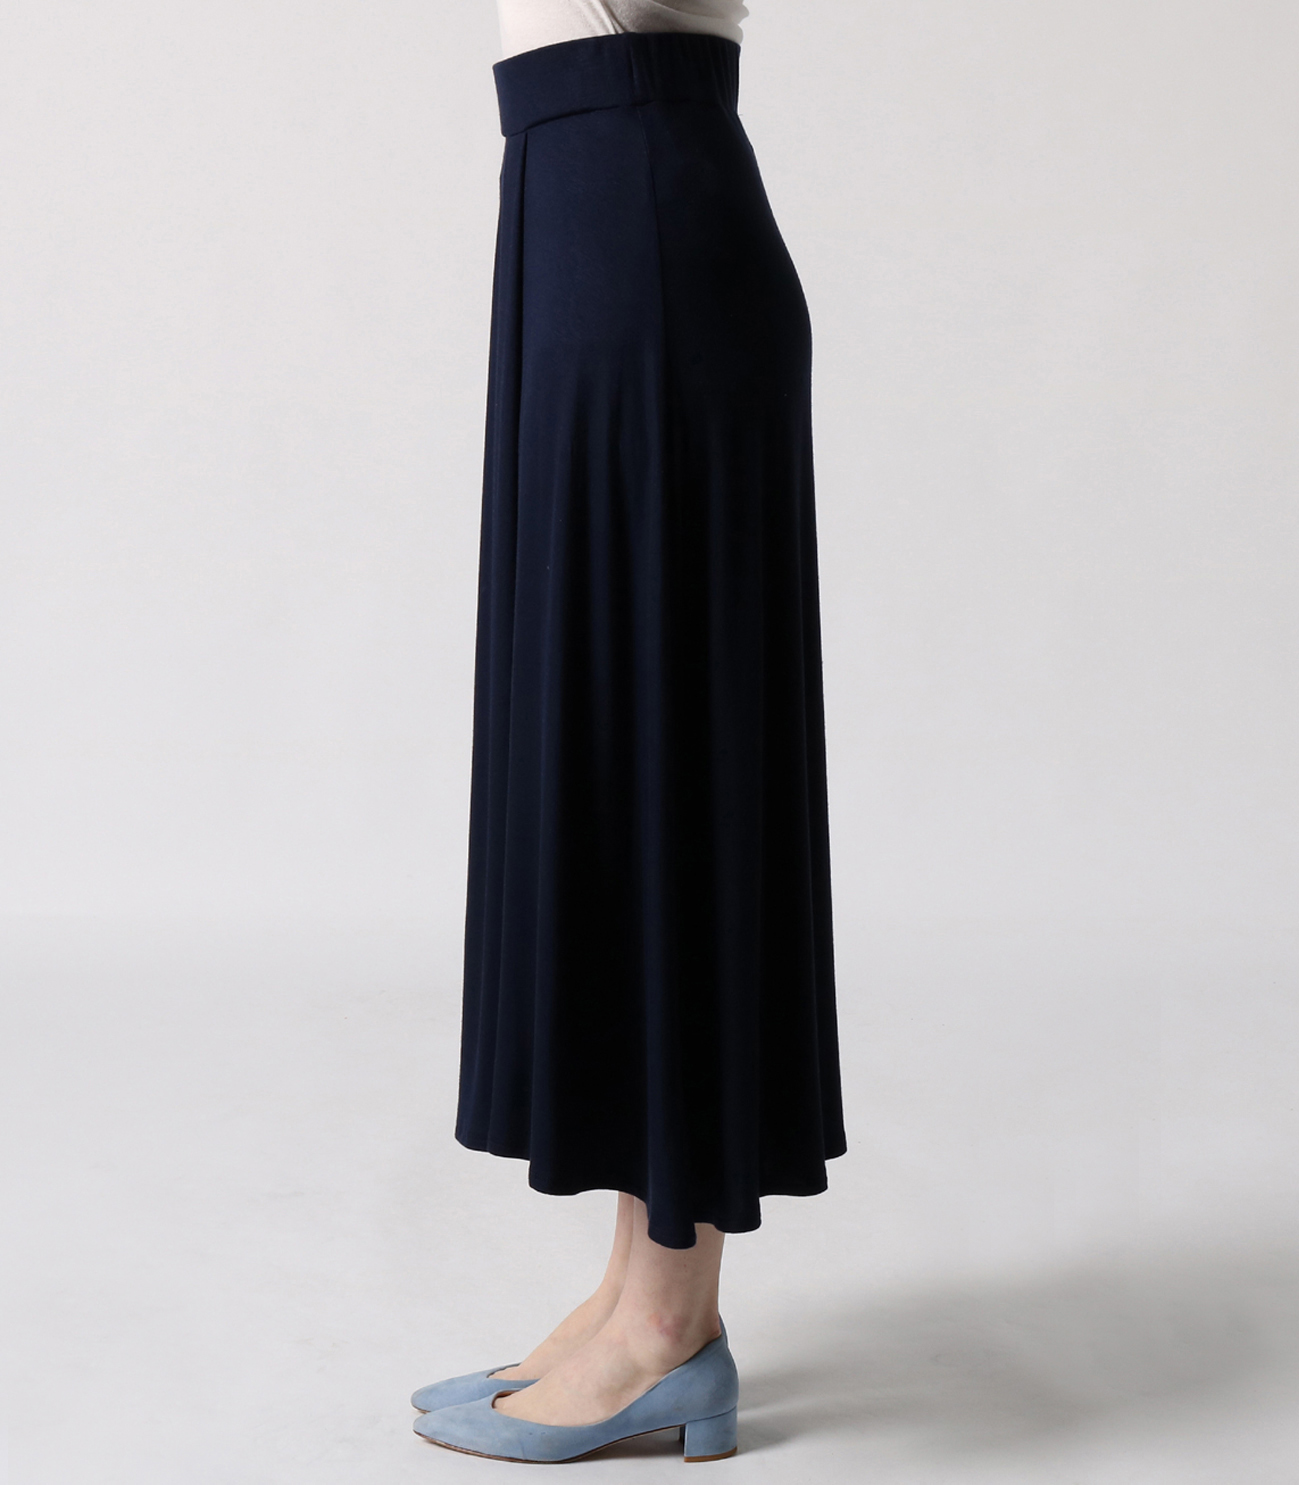 refined jersey long skirt 詳細画像 black 3